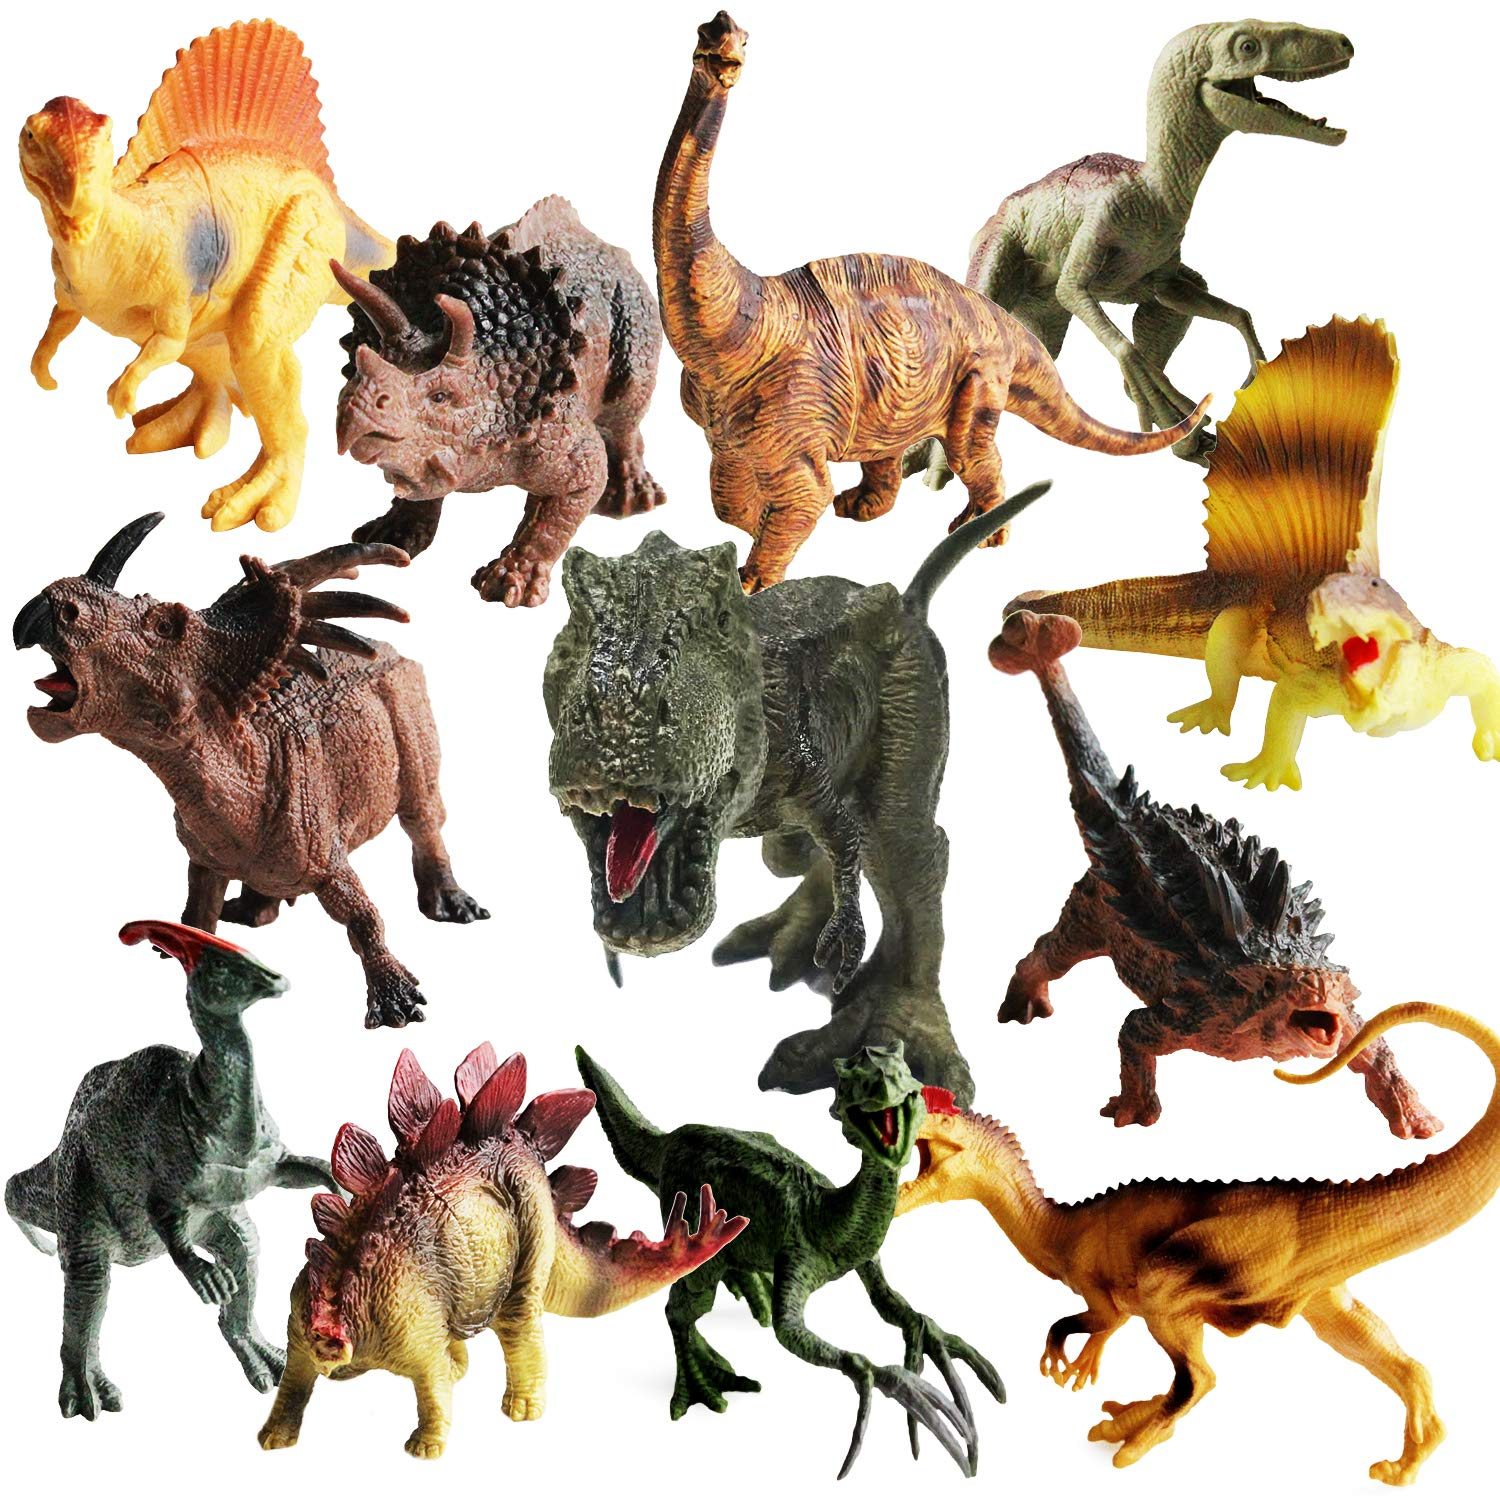 ToyerBeeDinosaurs Toys -12 Pack 7'' to 9'' Realistic Dinosaur Figures for 3 Years Old & Up, Great as Dinosaur Party Supplies